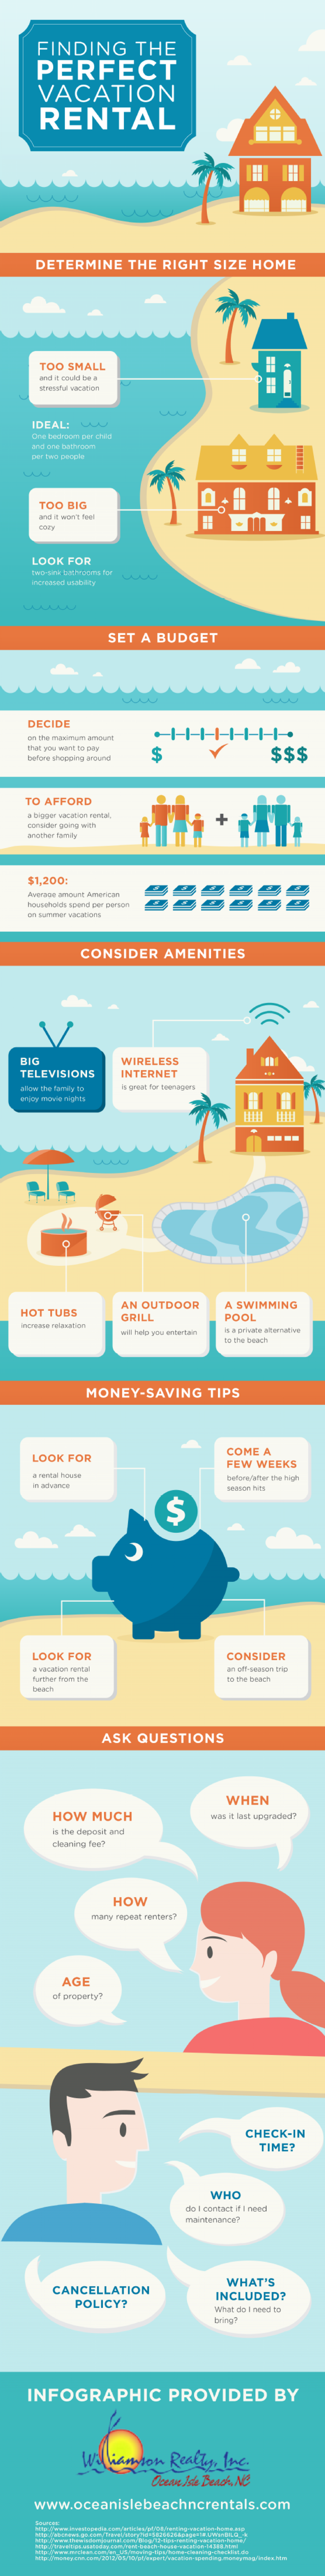 Finding the Perfect Vacation Rental Infographic